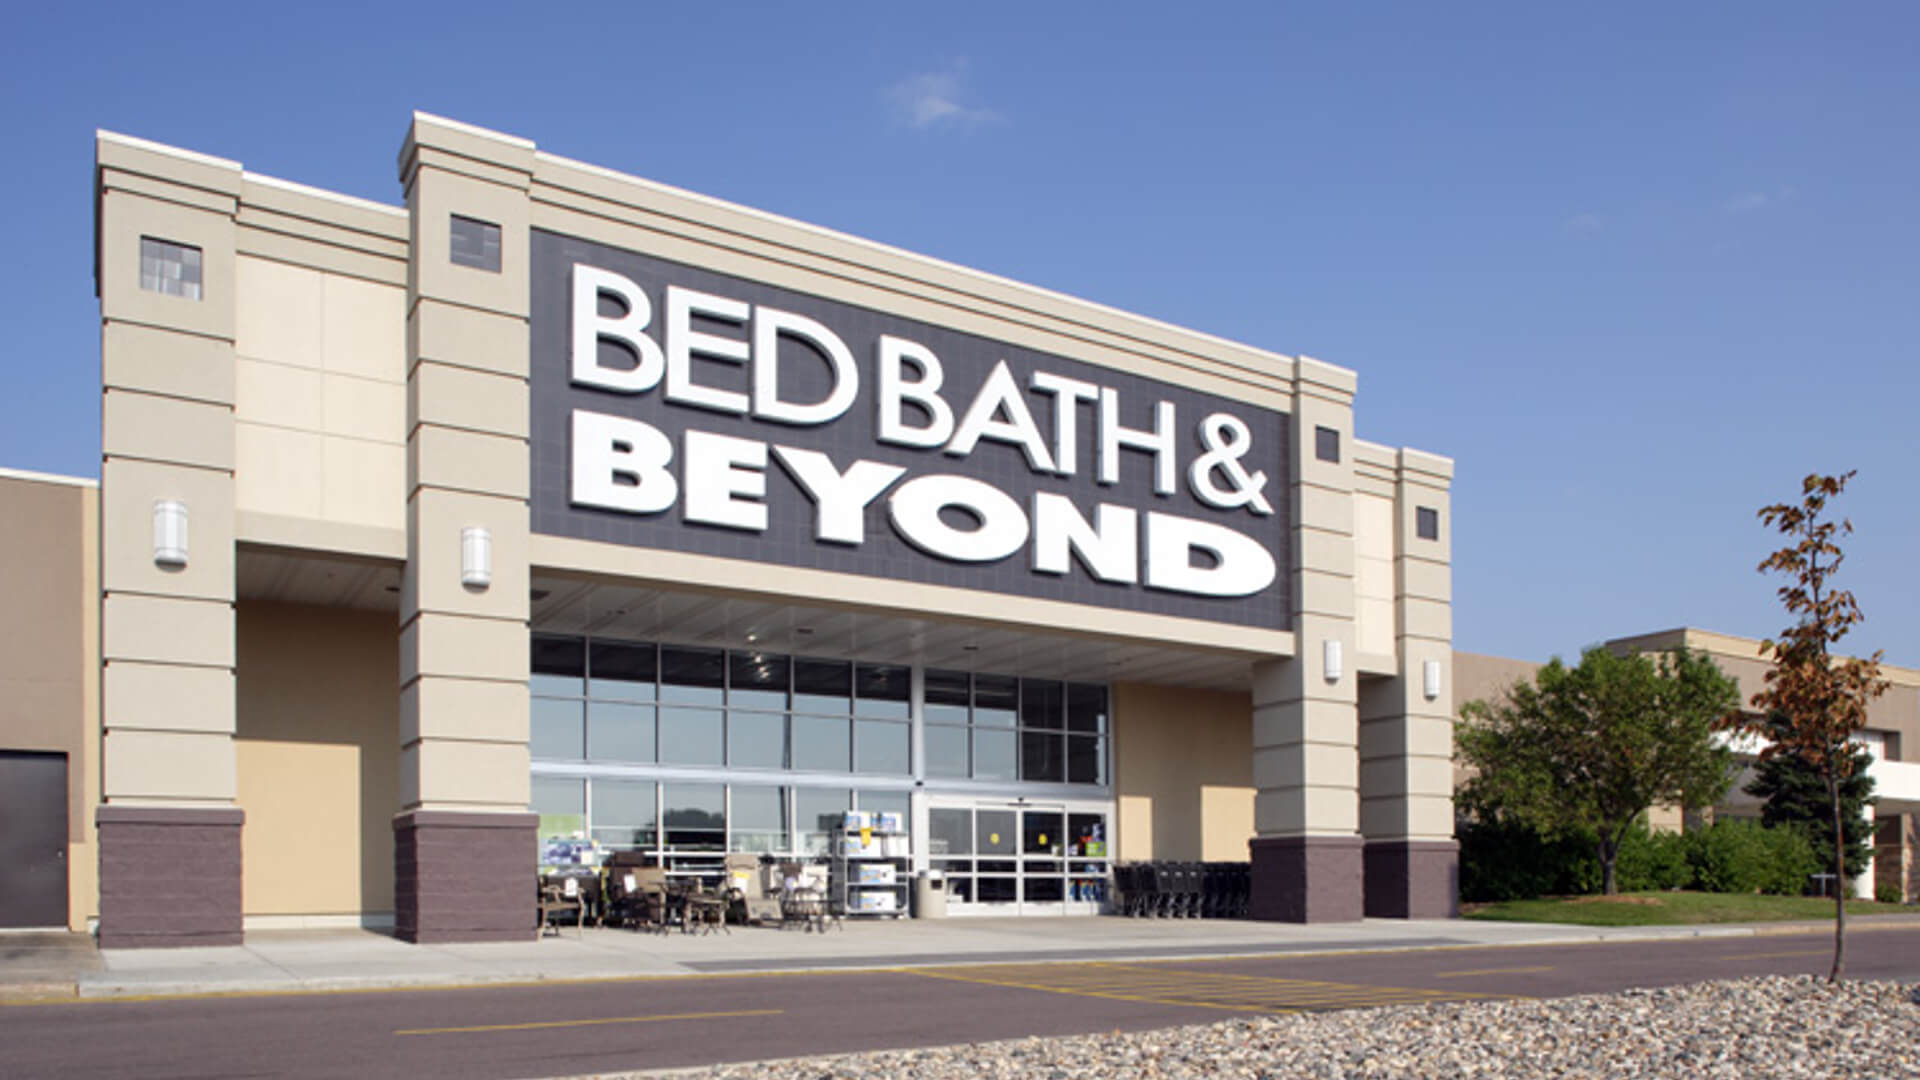 Bed Bath & Beyond | Facilities Maintenance | Dallas Fort Worth Texas